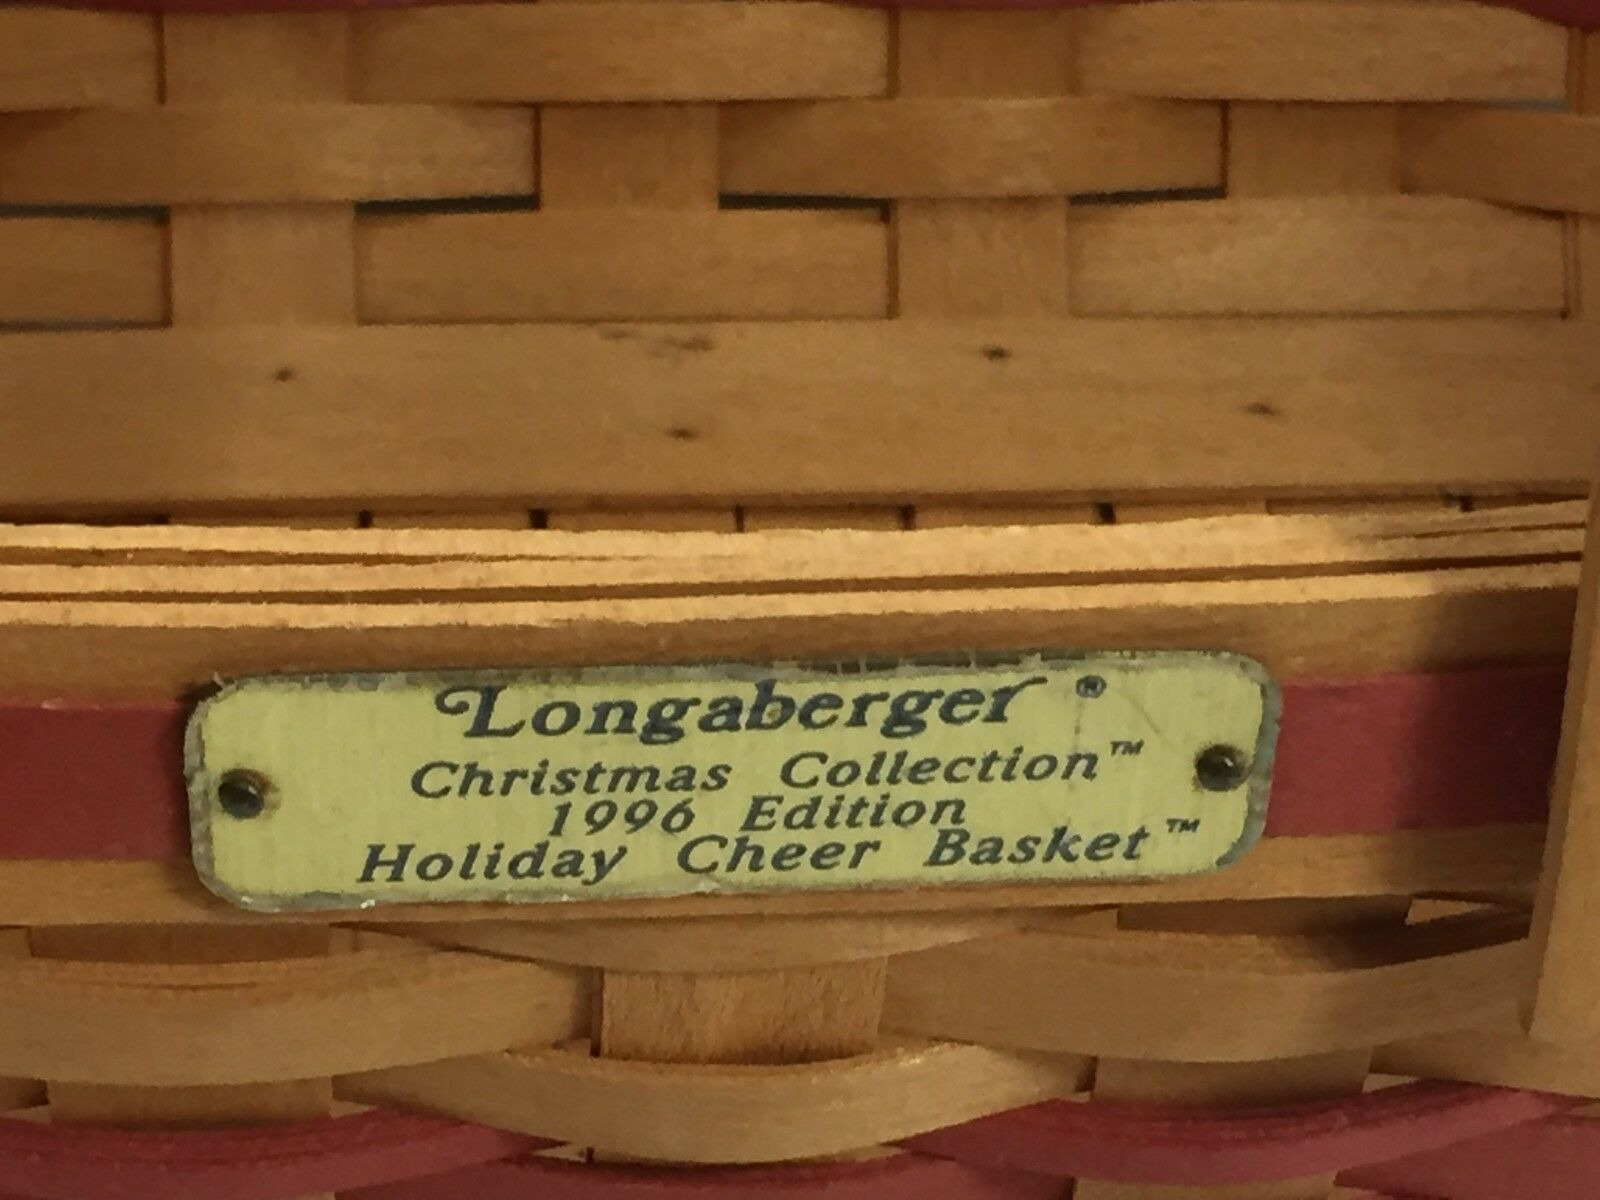 LONGABERGER 1996 Christmas Collection Holiday Cheer Basket 24024